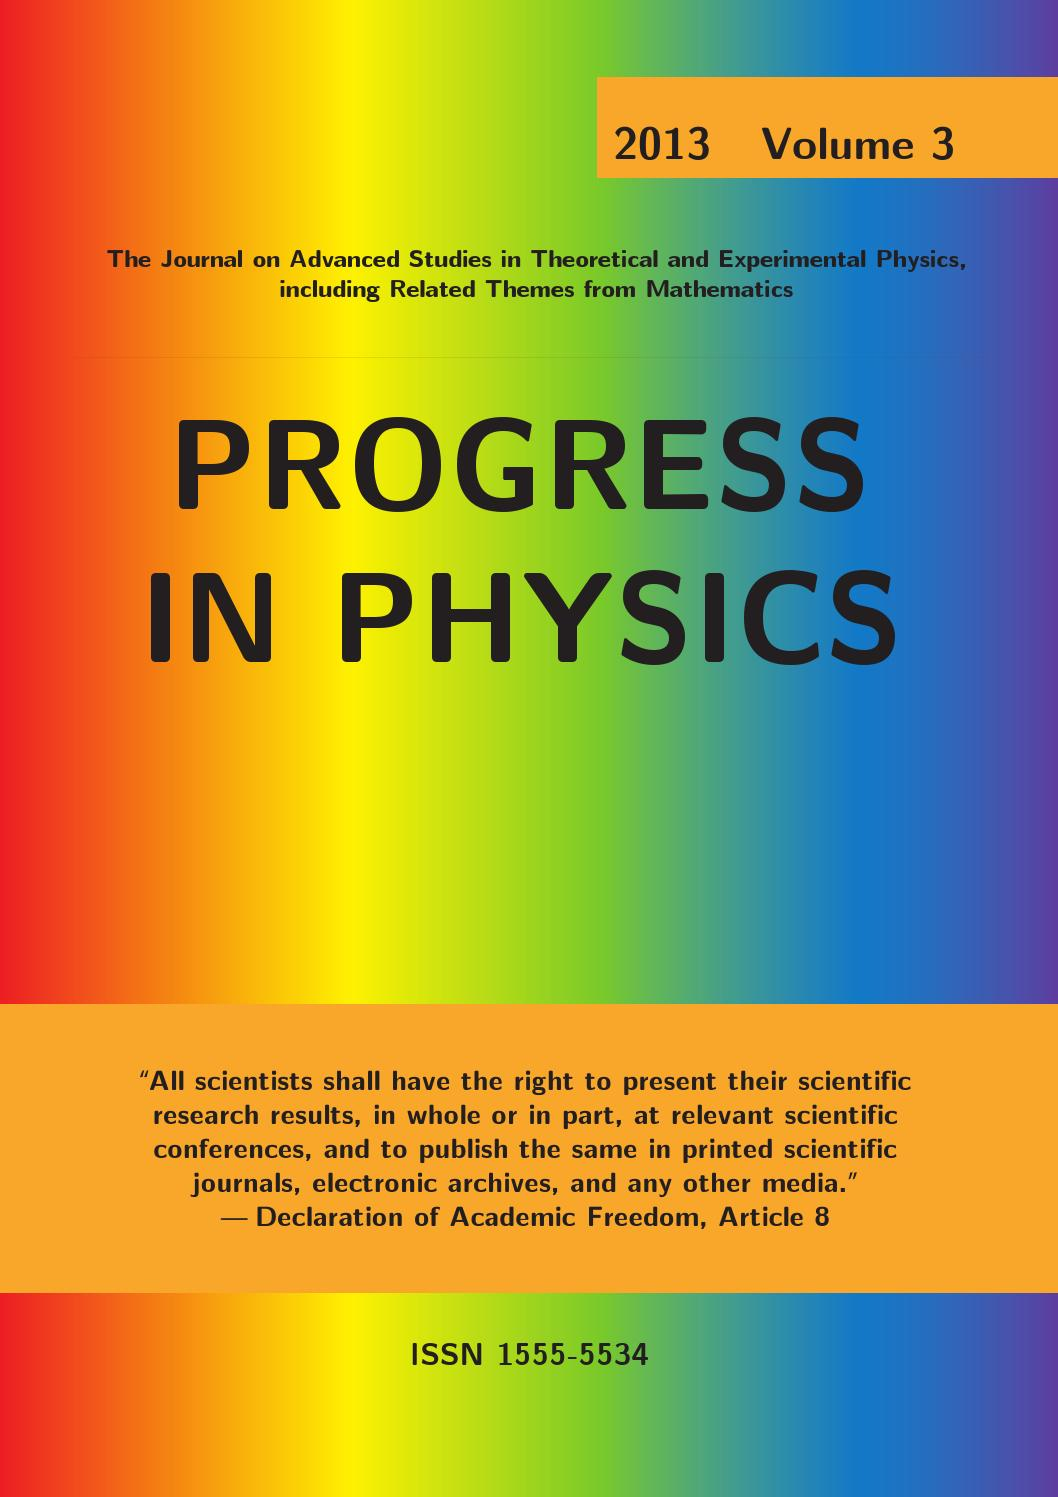 Progress In Physics 3 2013 By Don Hass Issuu Virtual Reality Circuit Builder Spectra7 Microsystems Is Trending